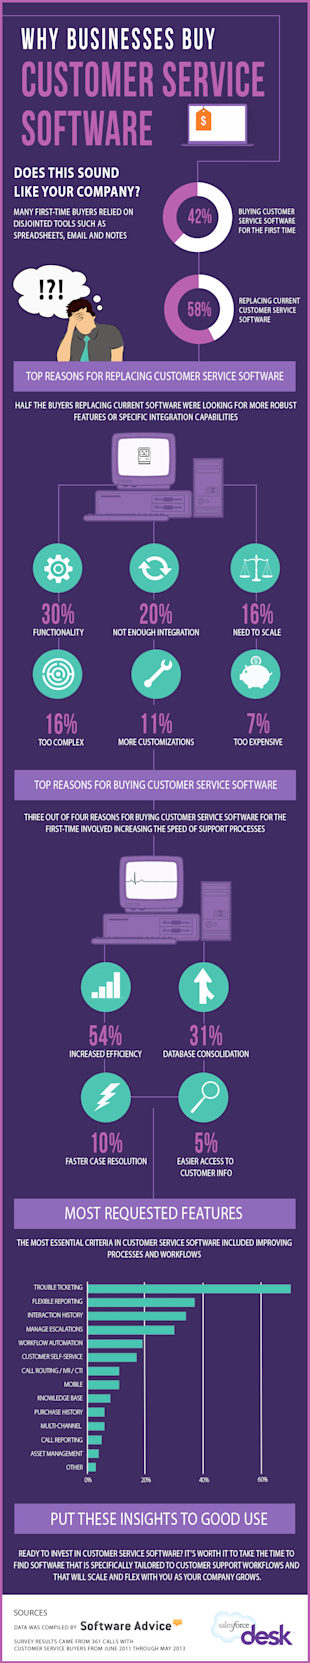 Why Businesses Buy Customer Service Software [Infographic] image customer service software infographic